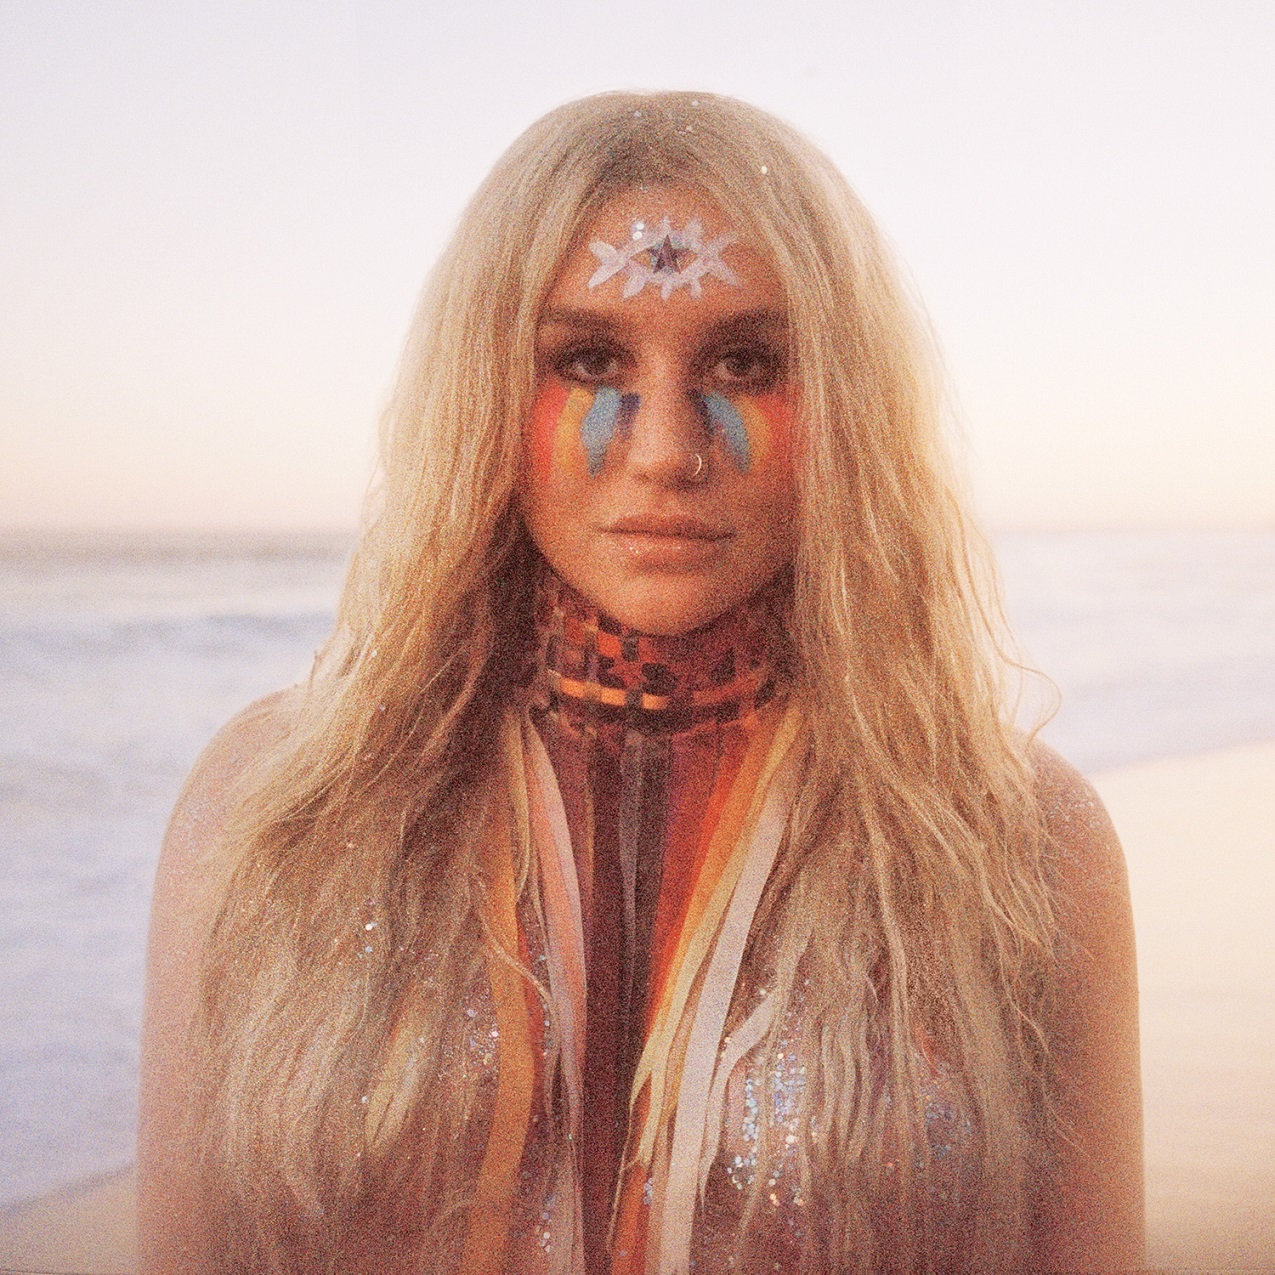 Praying - Kesha